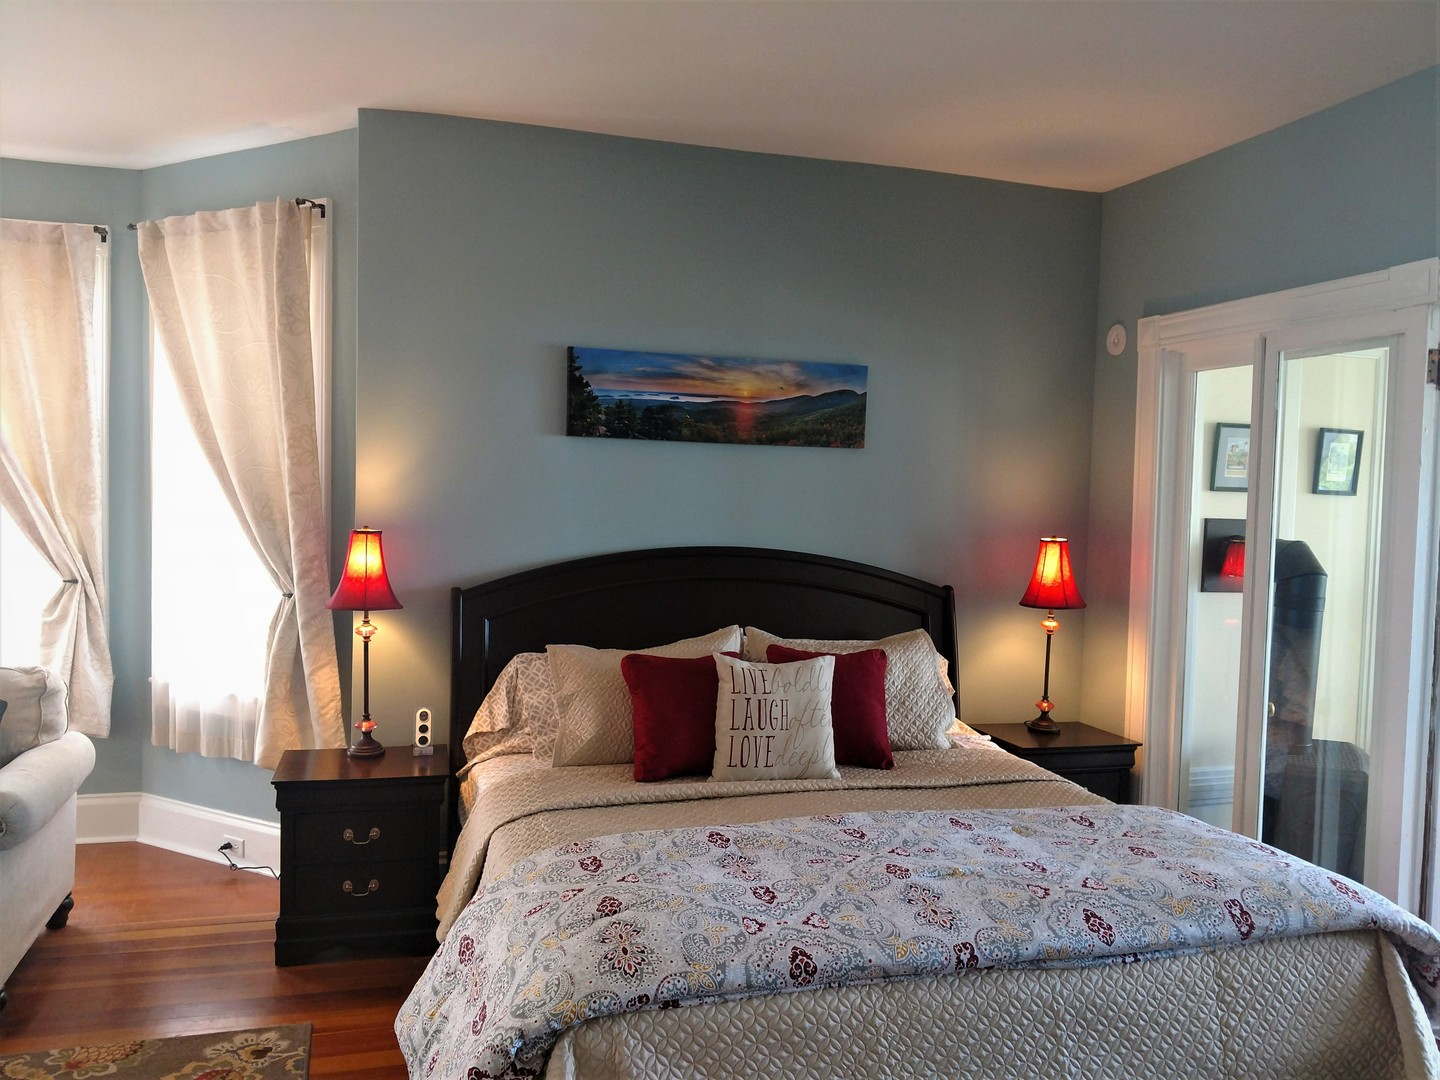 A bedroom with a large bed sitting in a room at The Saltair Inn Waterfront B&B.